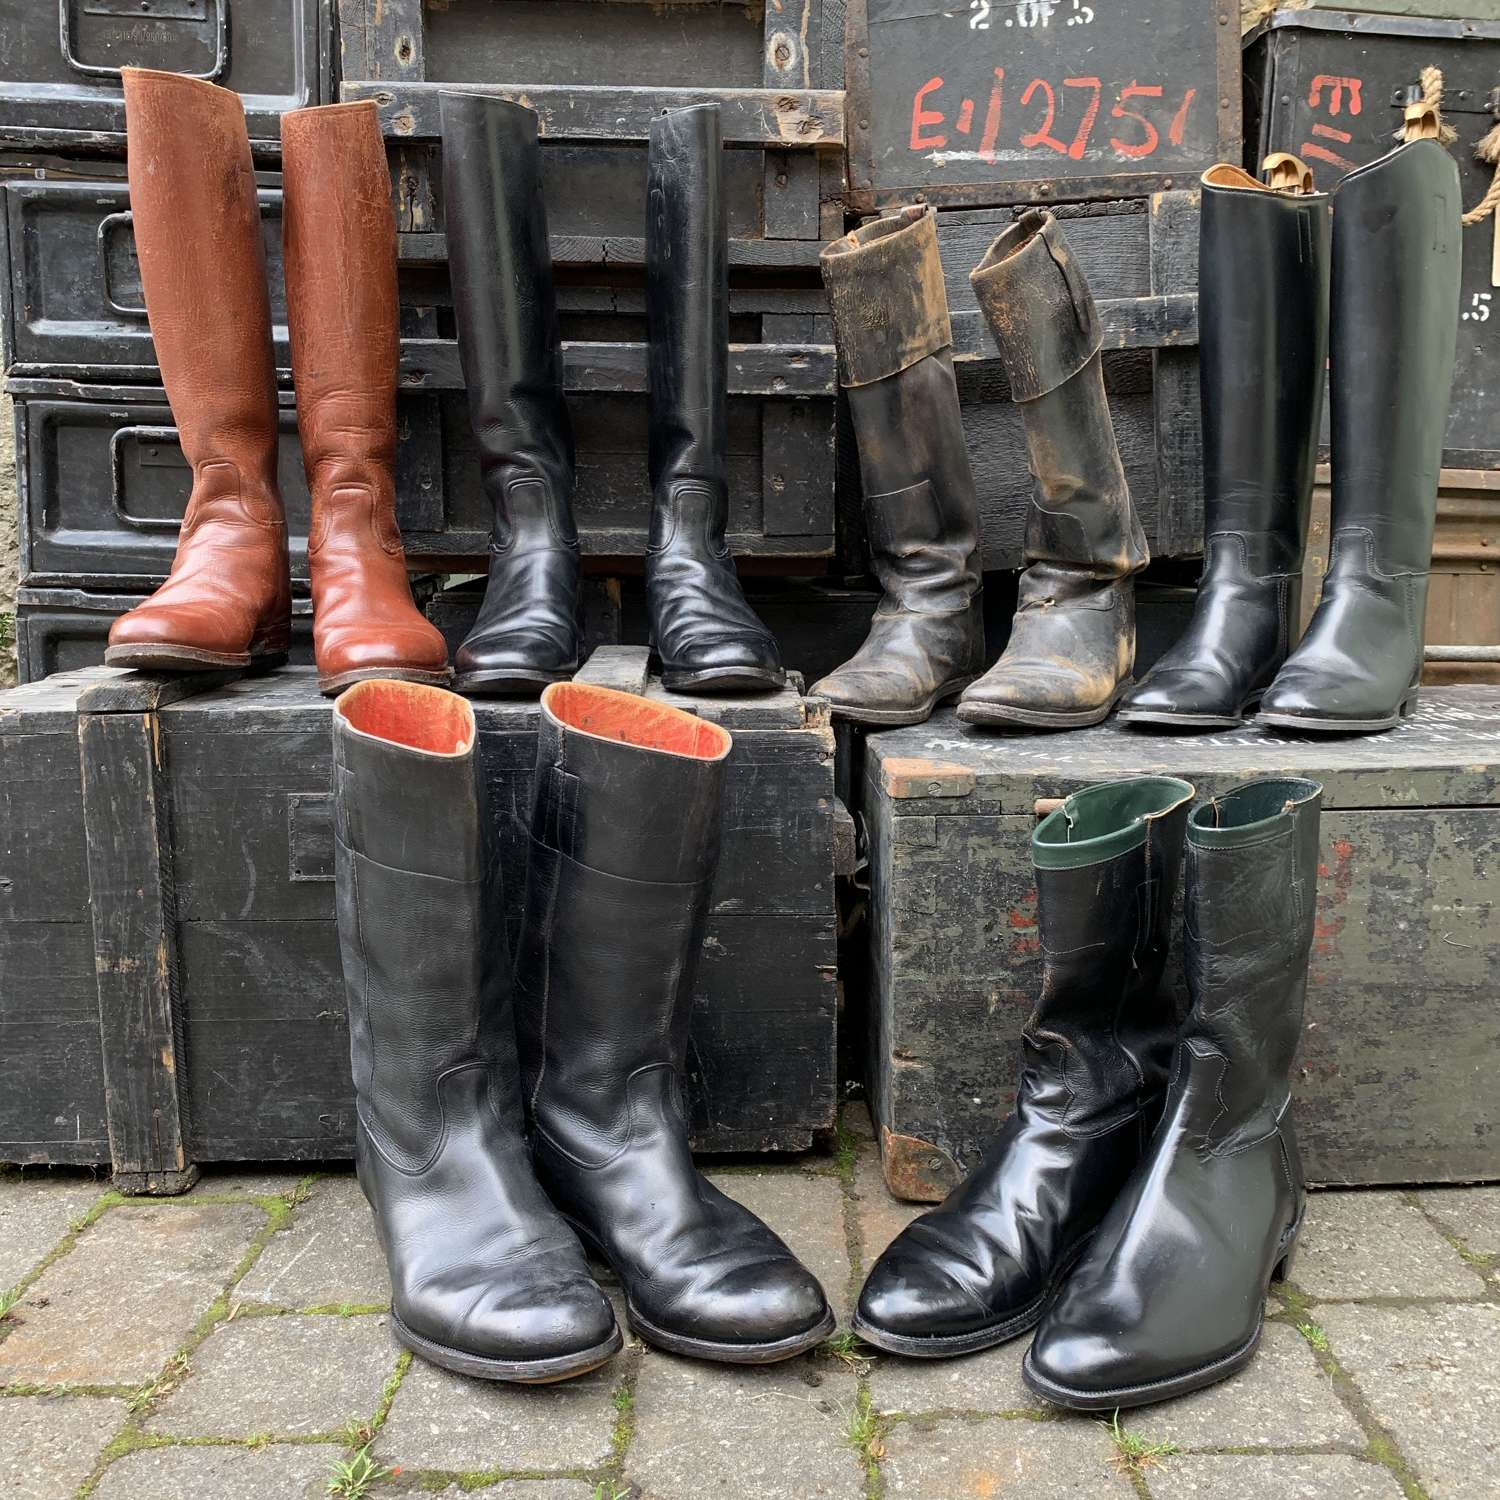 Collection of Gentleman's Leather Riding Boots